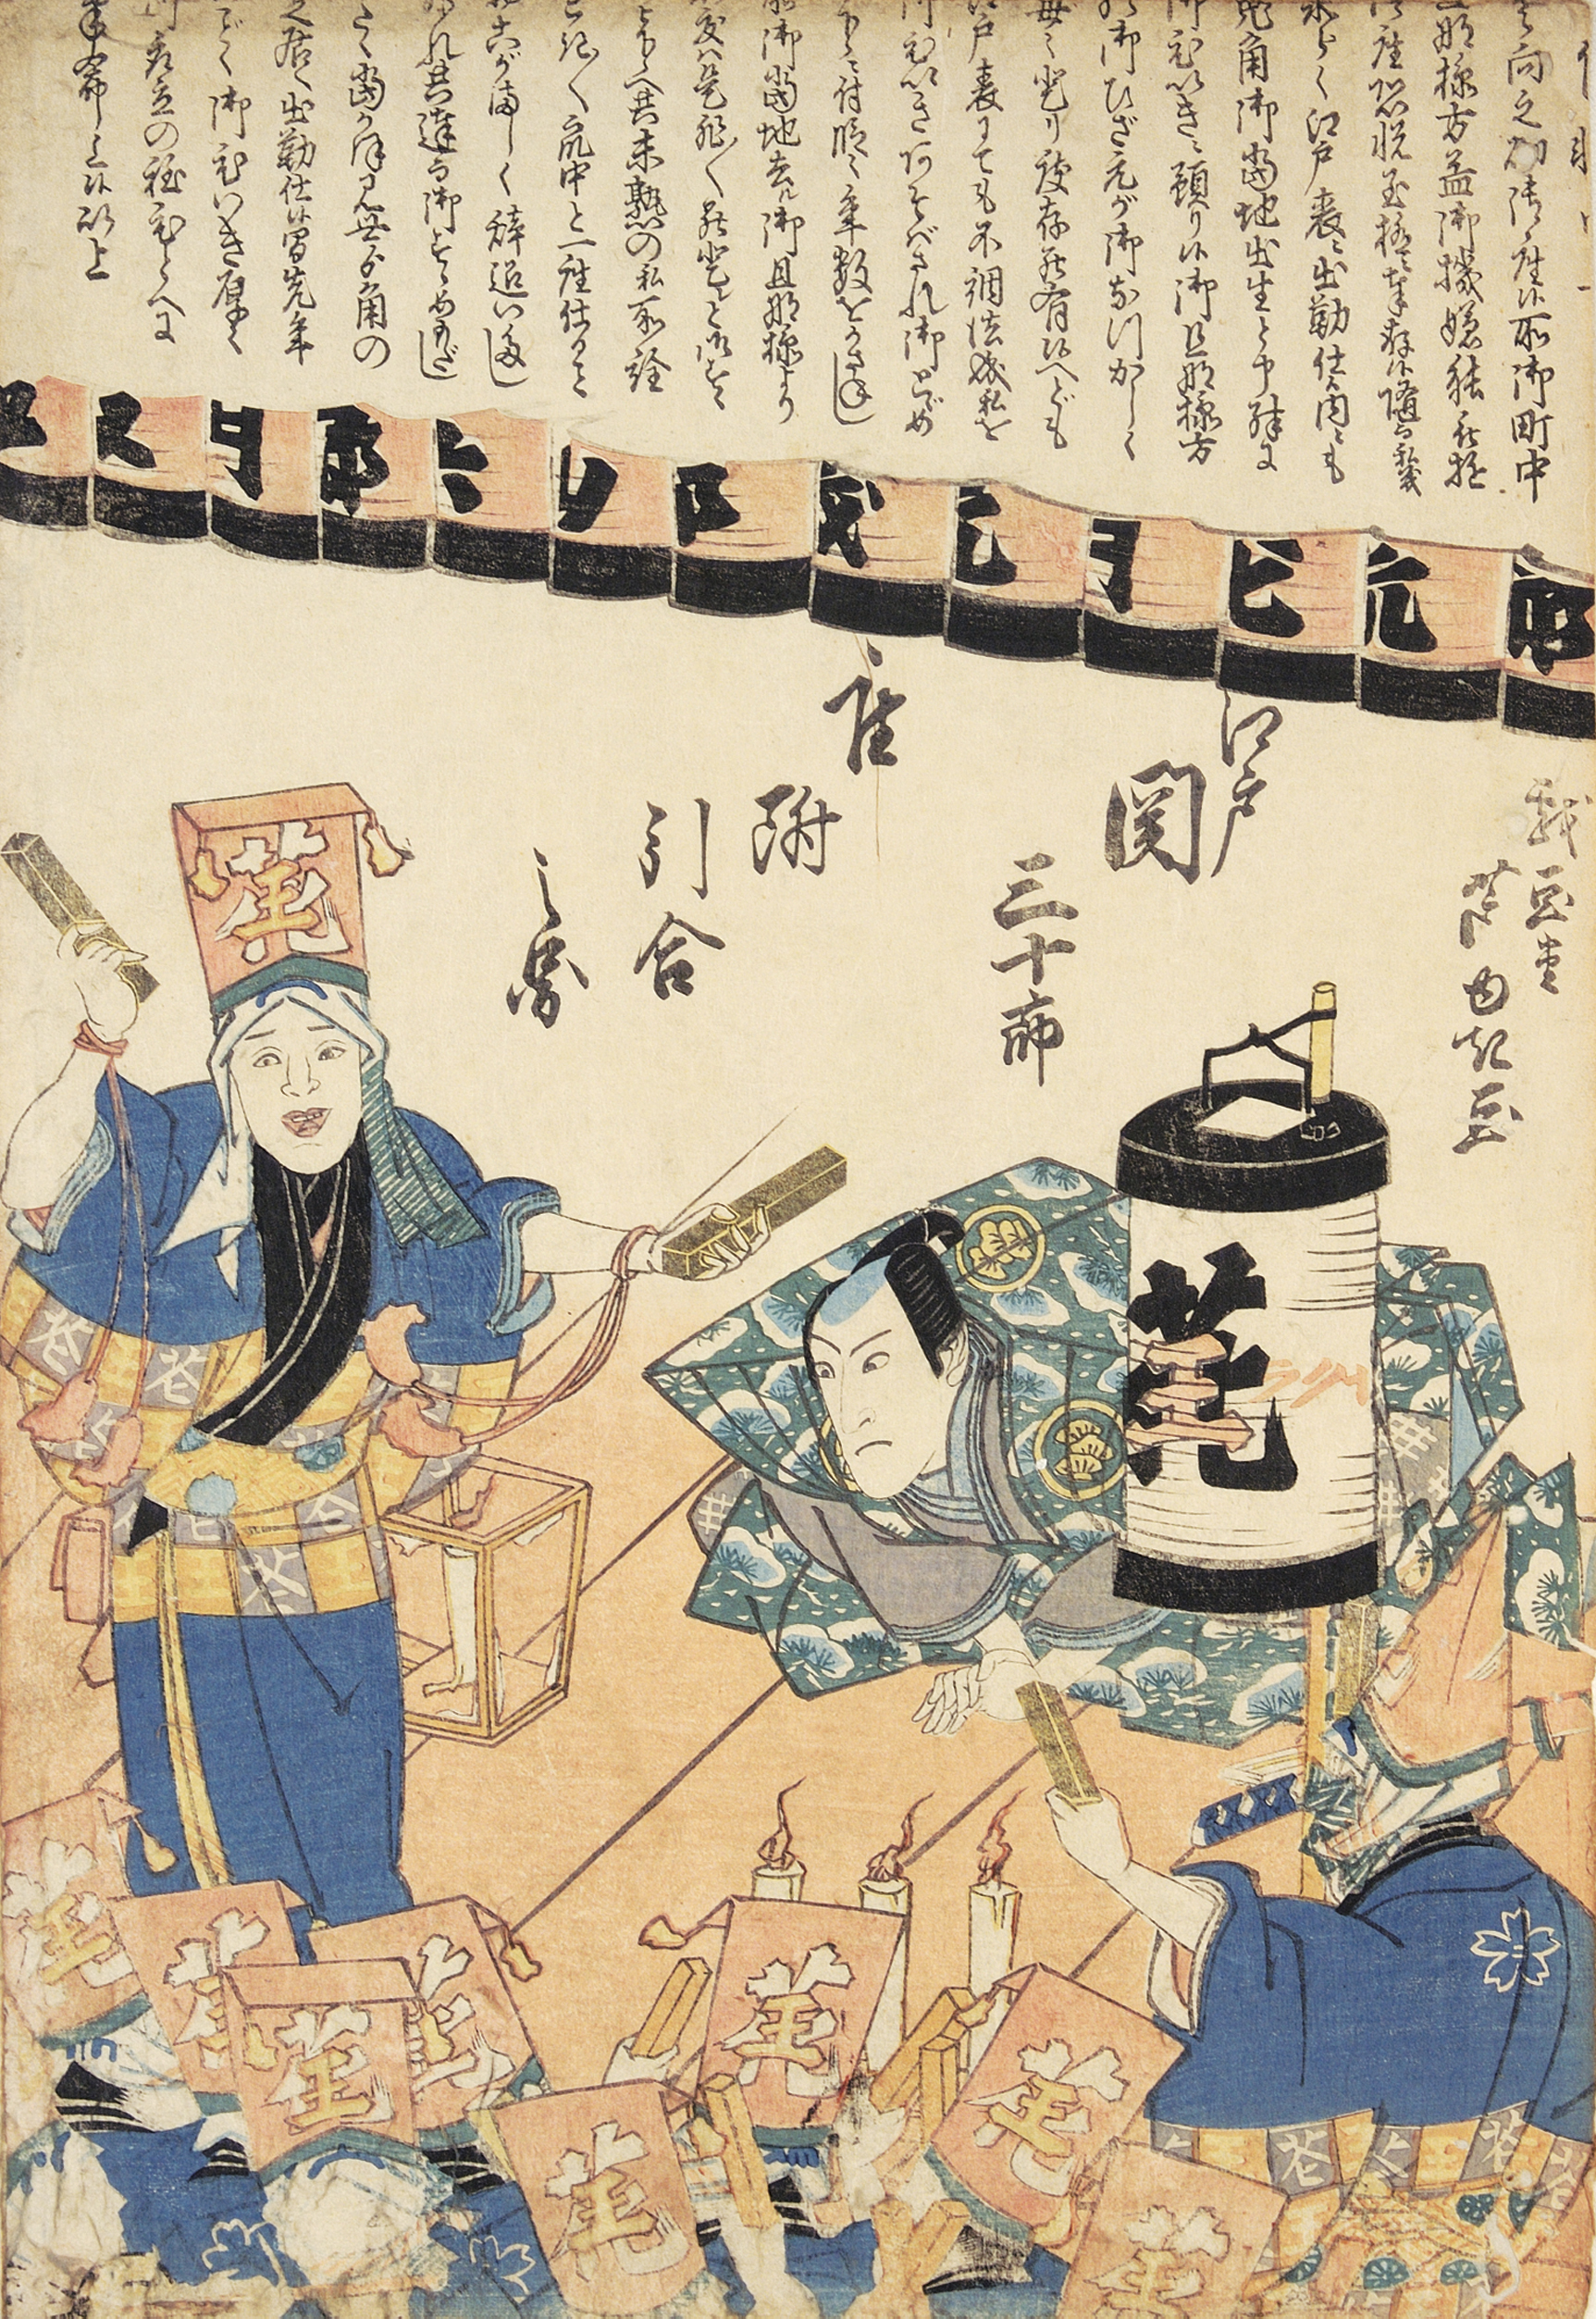 A colour woodblock print of kabuki fans wearing rectangular hats and holding clappers, celebrating their favourite kabuki actors.